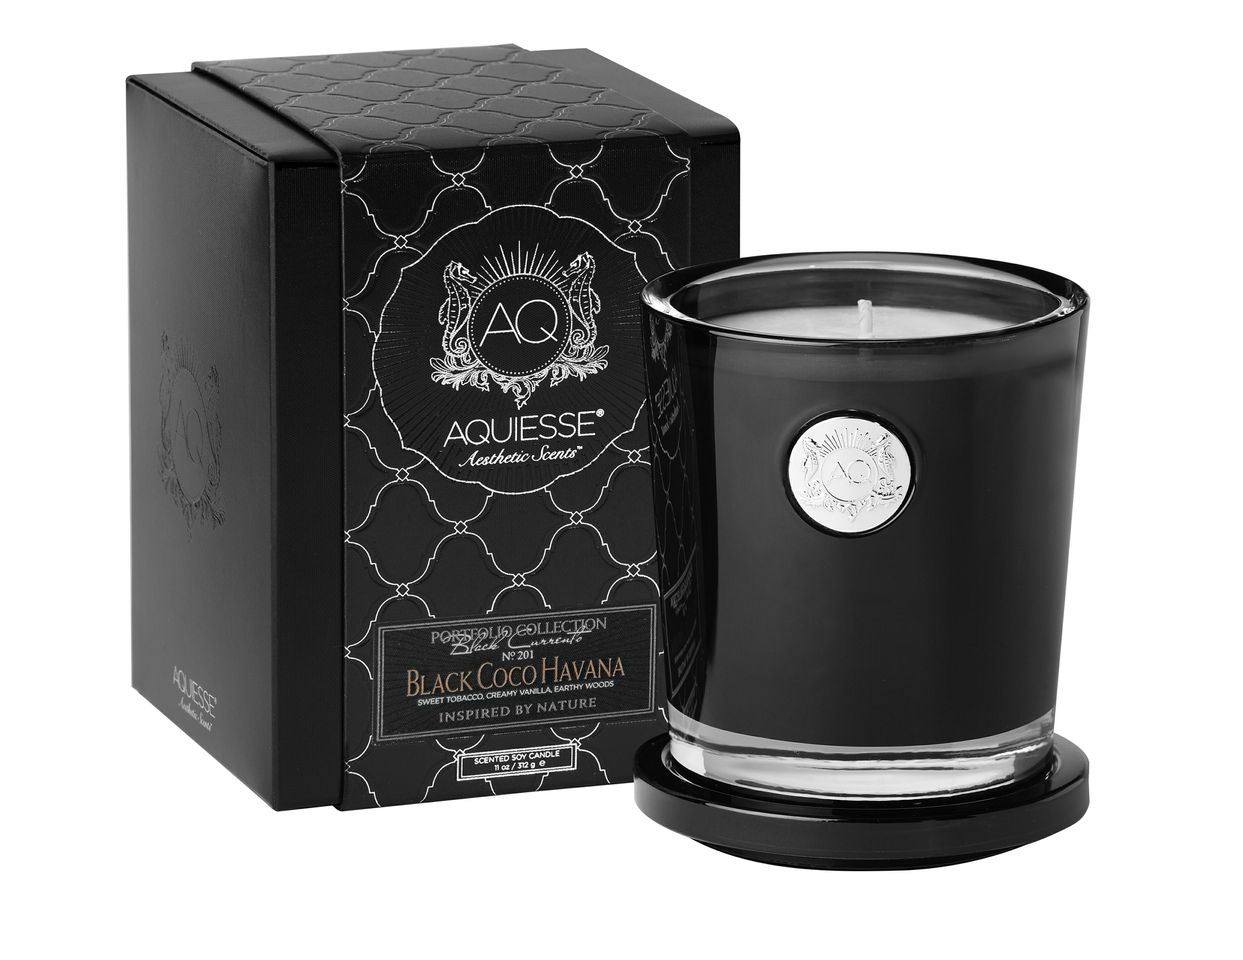 Black Coco Havana Candle in Glass - Aquiesse